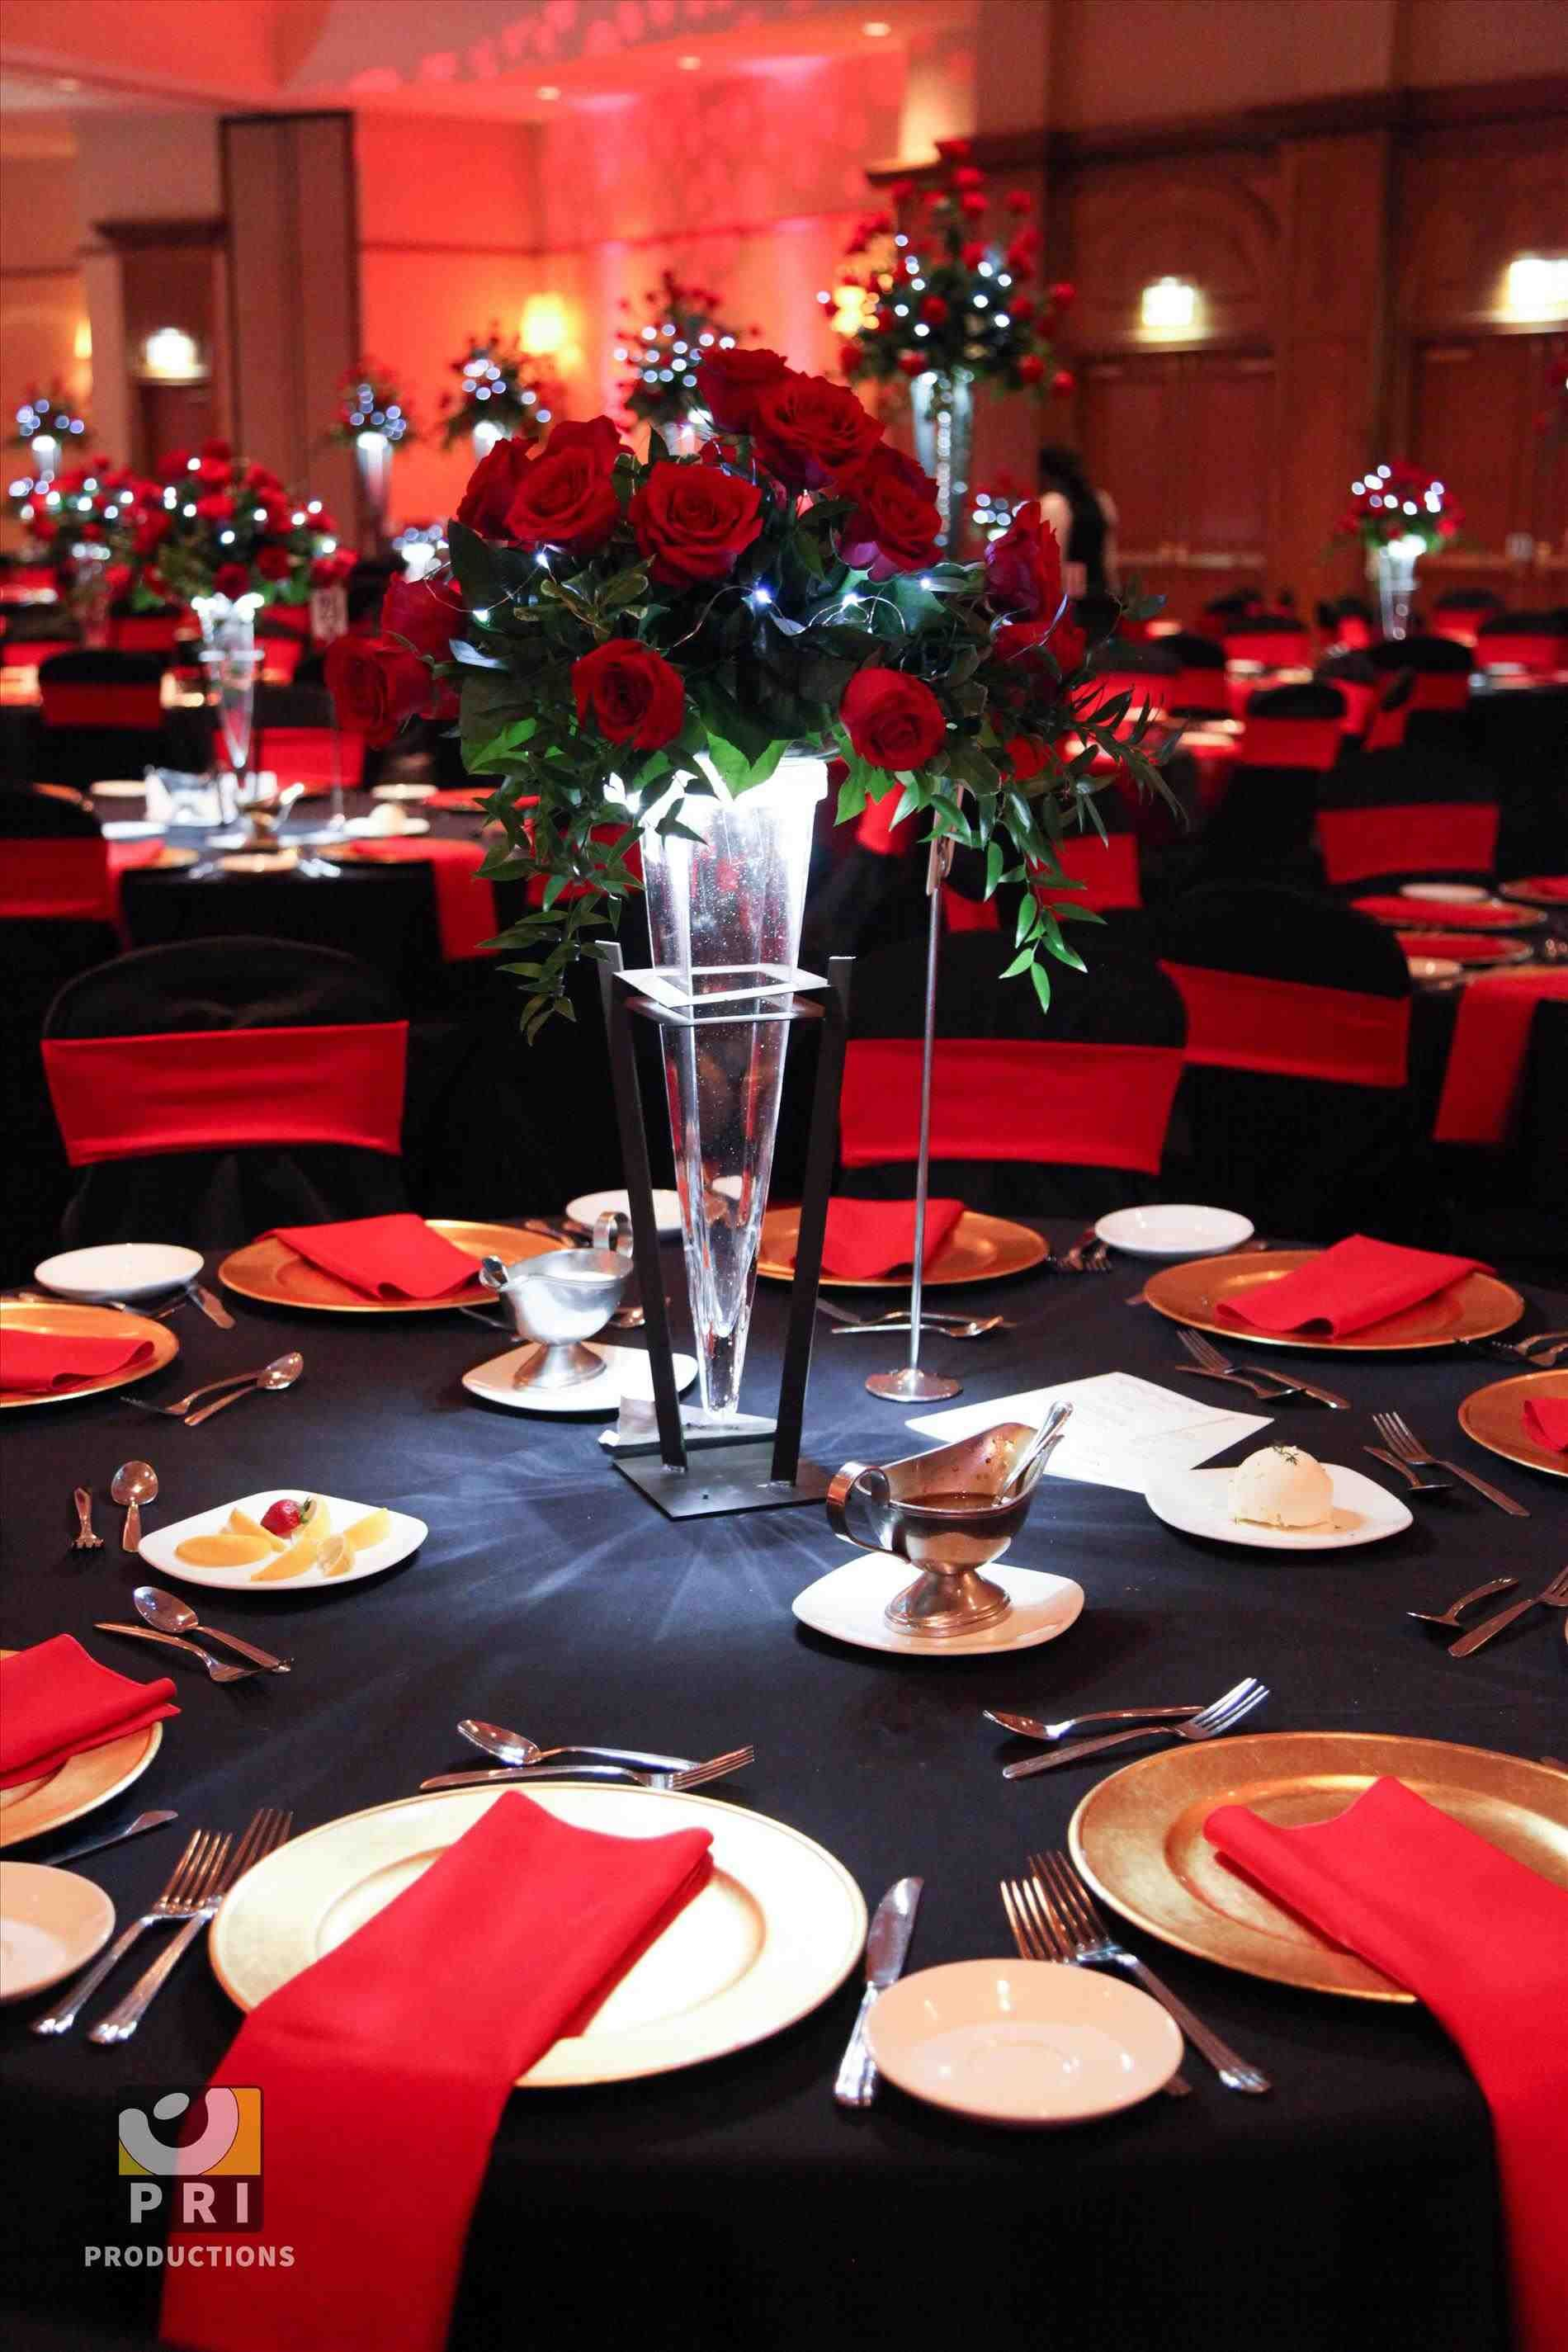 Black Tablecloth Red Table Runner Gold Wedding Decorations Red